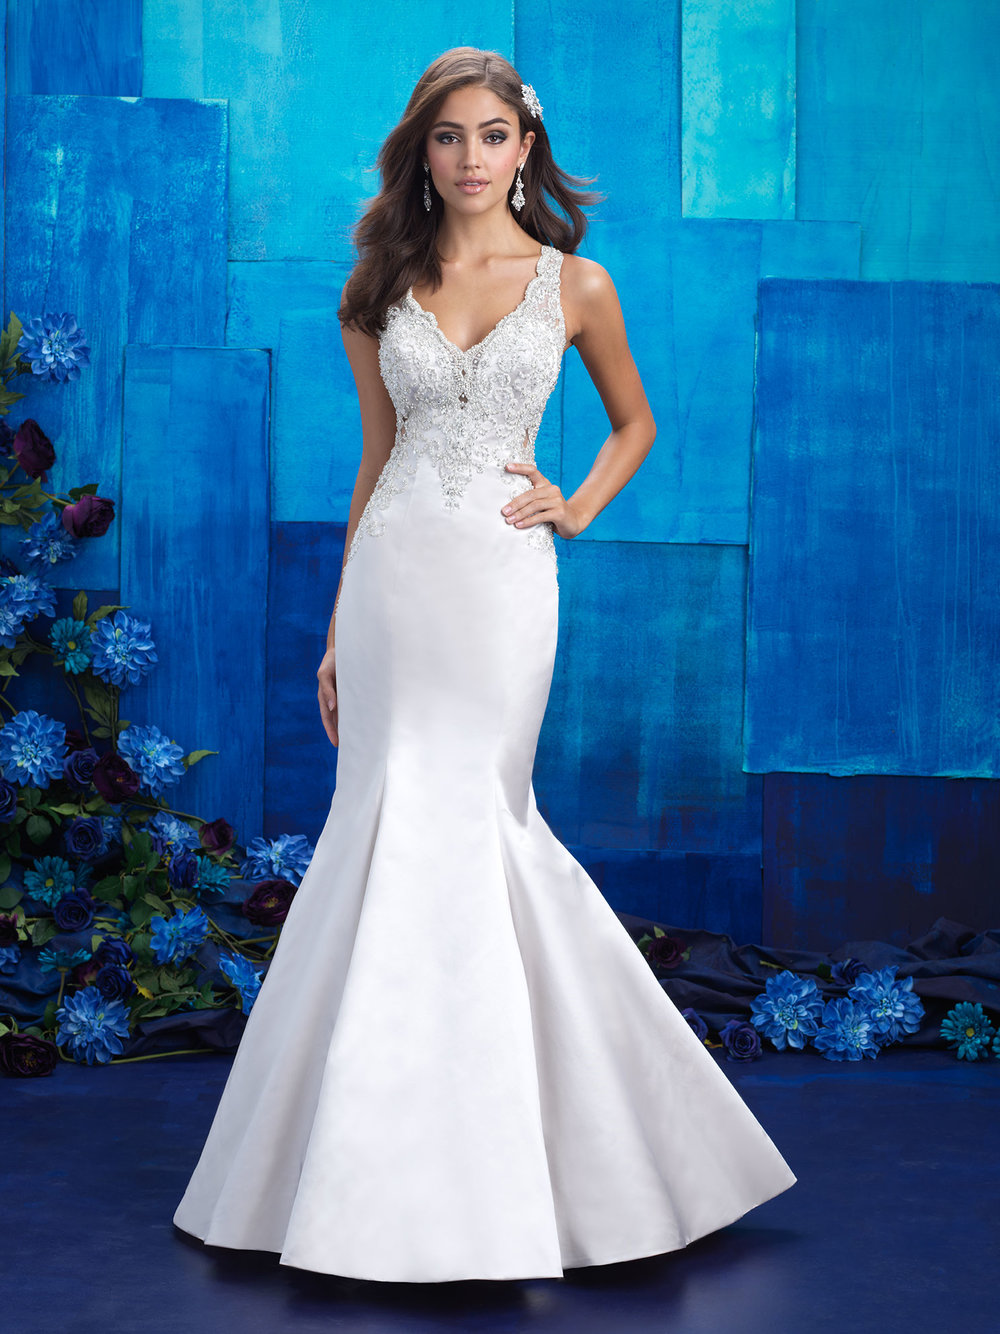 Style 9402 - The open illusion back of this gown is softened by swirls of beaded appliques and floating buttons.